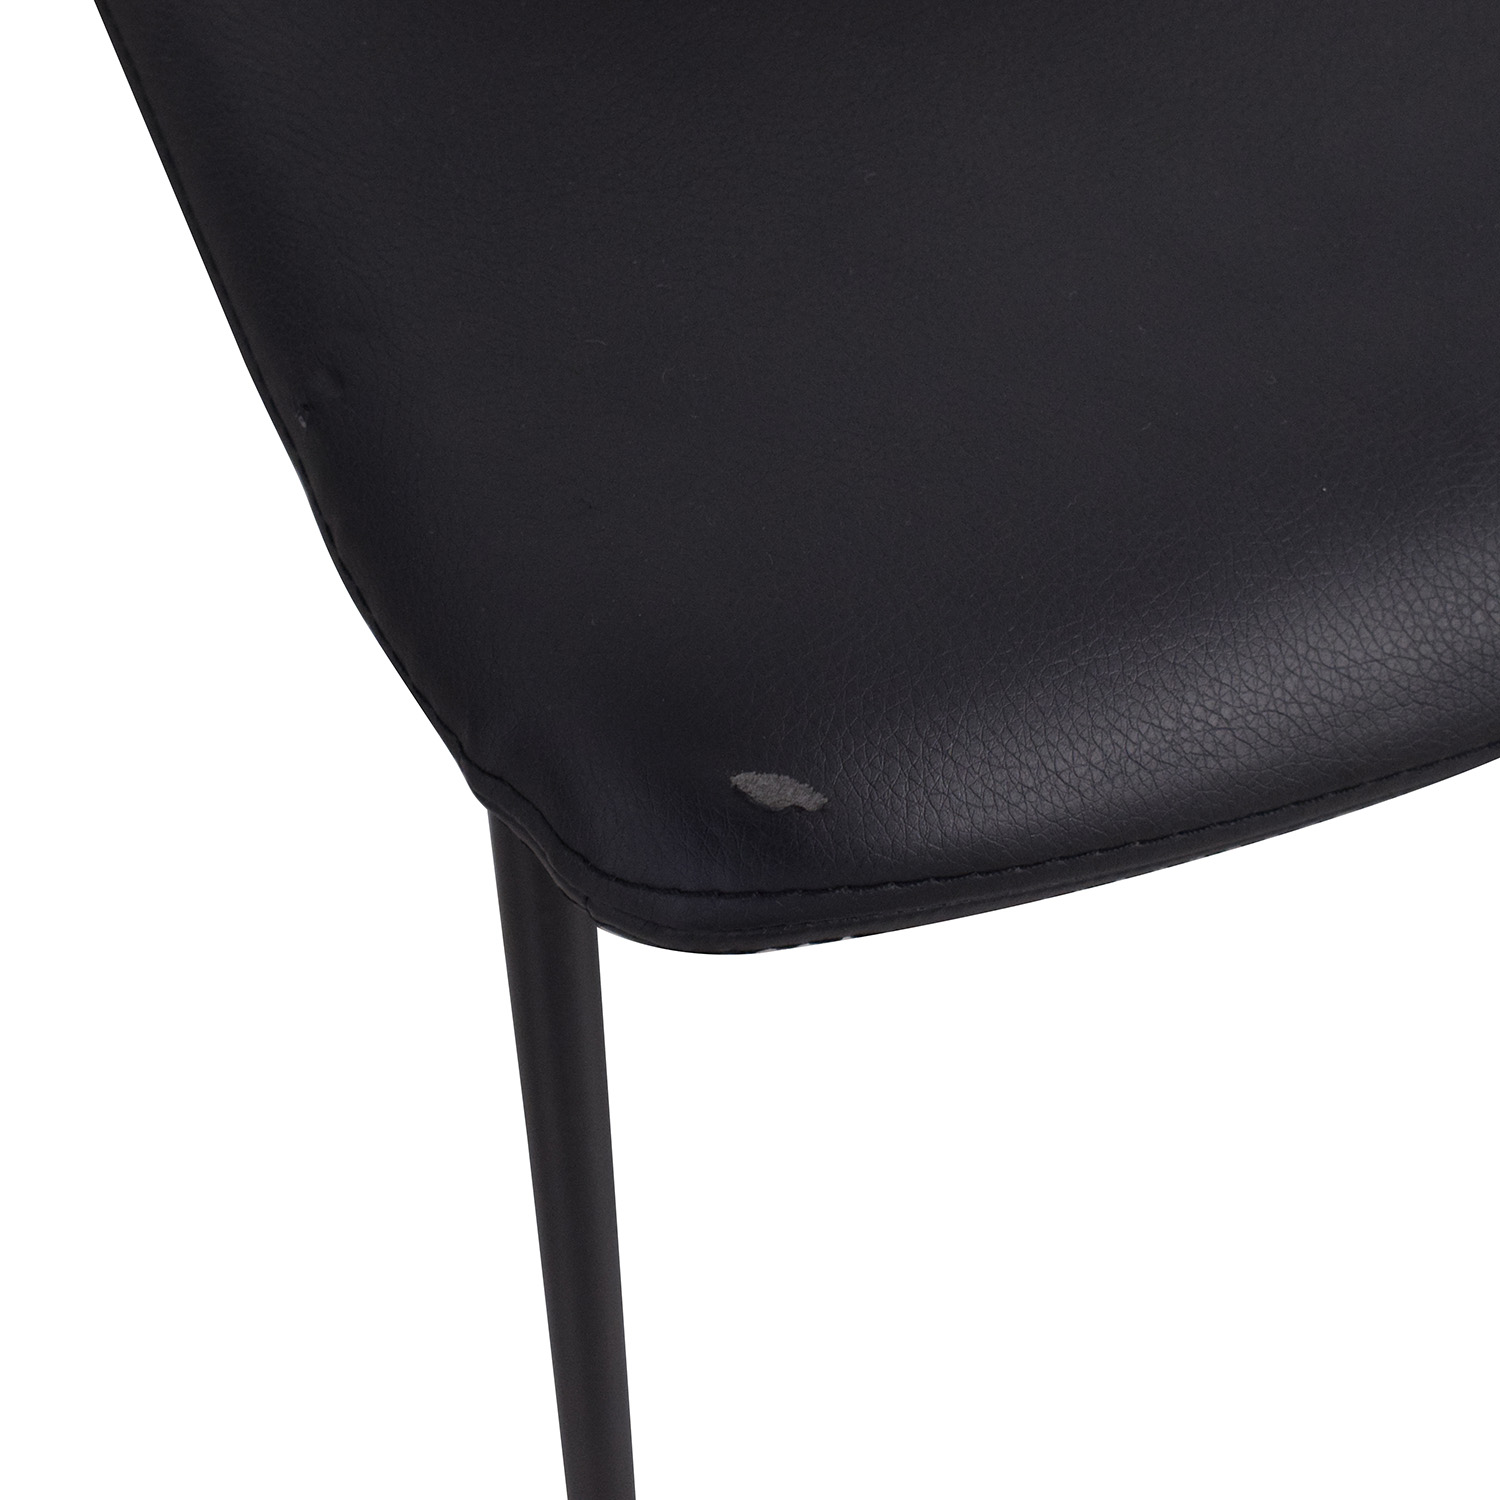 m.a.d. m.a.d. Black Sling Upholstered Chairs nyc